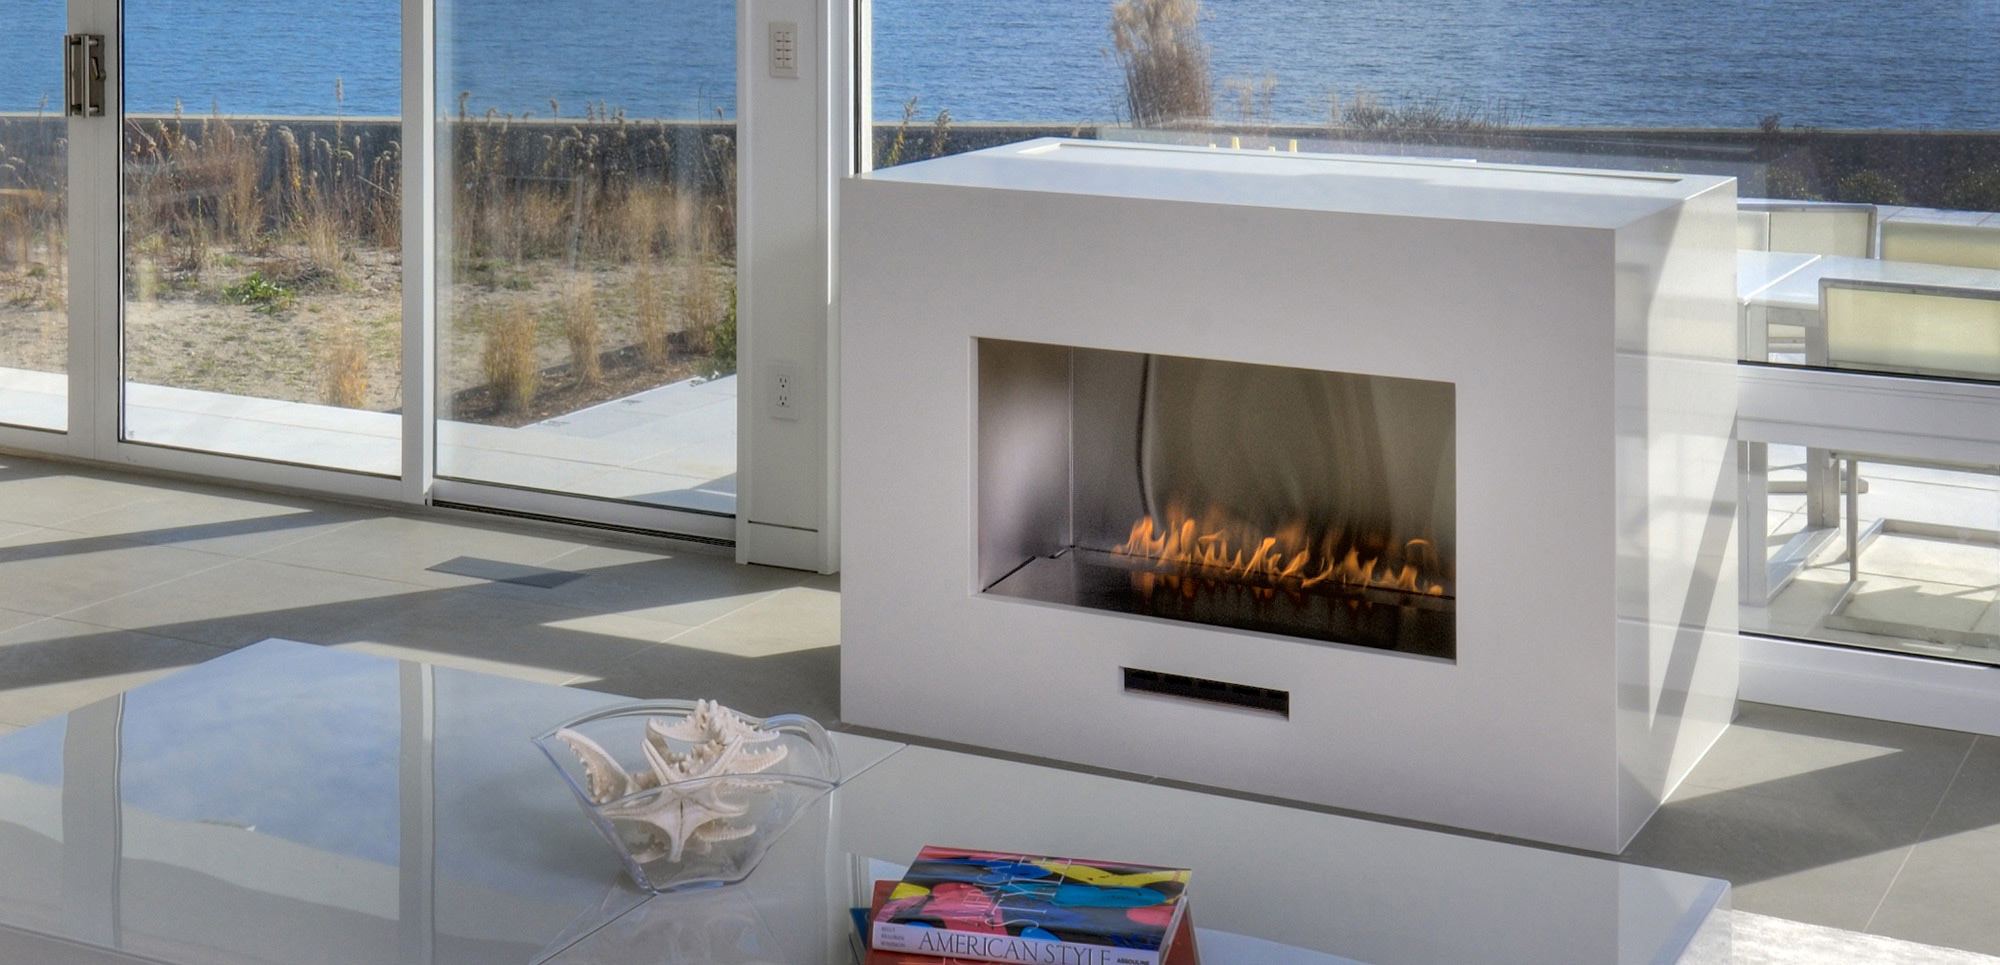 Spark Modern Fires offers the best selection of modern gas fireplaces. Be inspired by our variety of fireplaces here and find the right one for you.